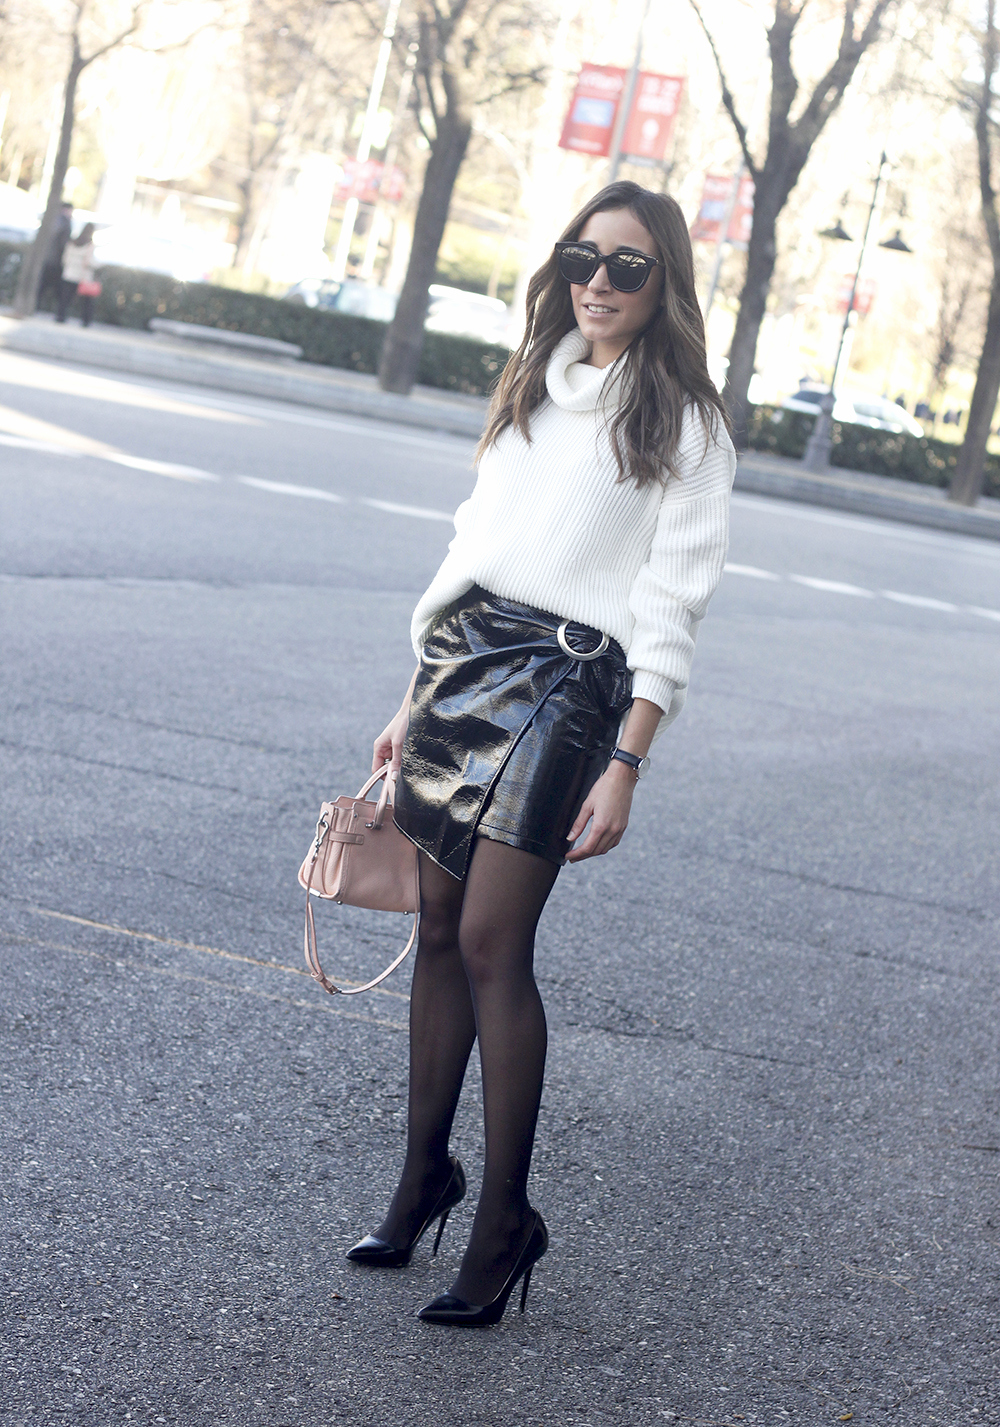 Black Patent leather skirt white sweater coach bag heels outfit style fashion winter08